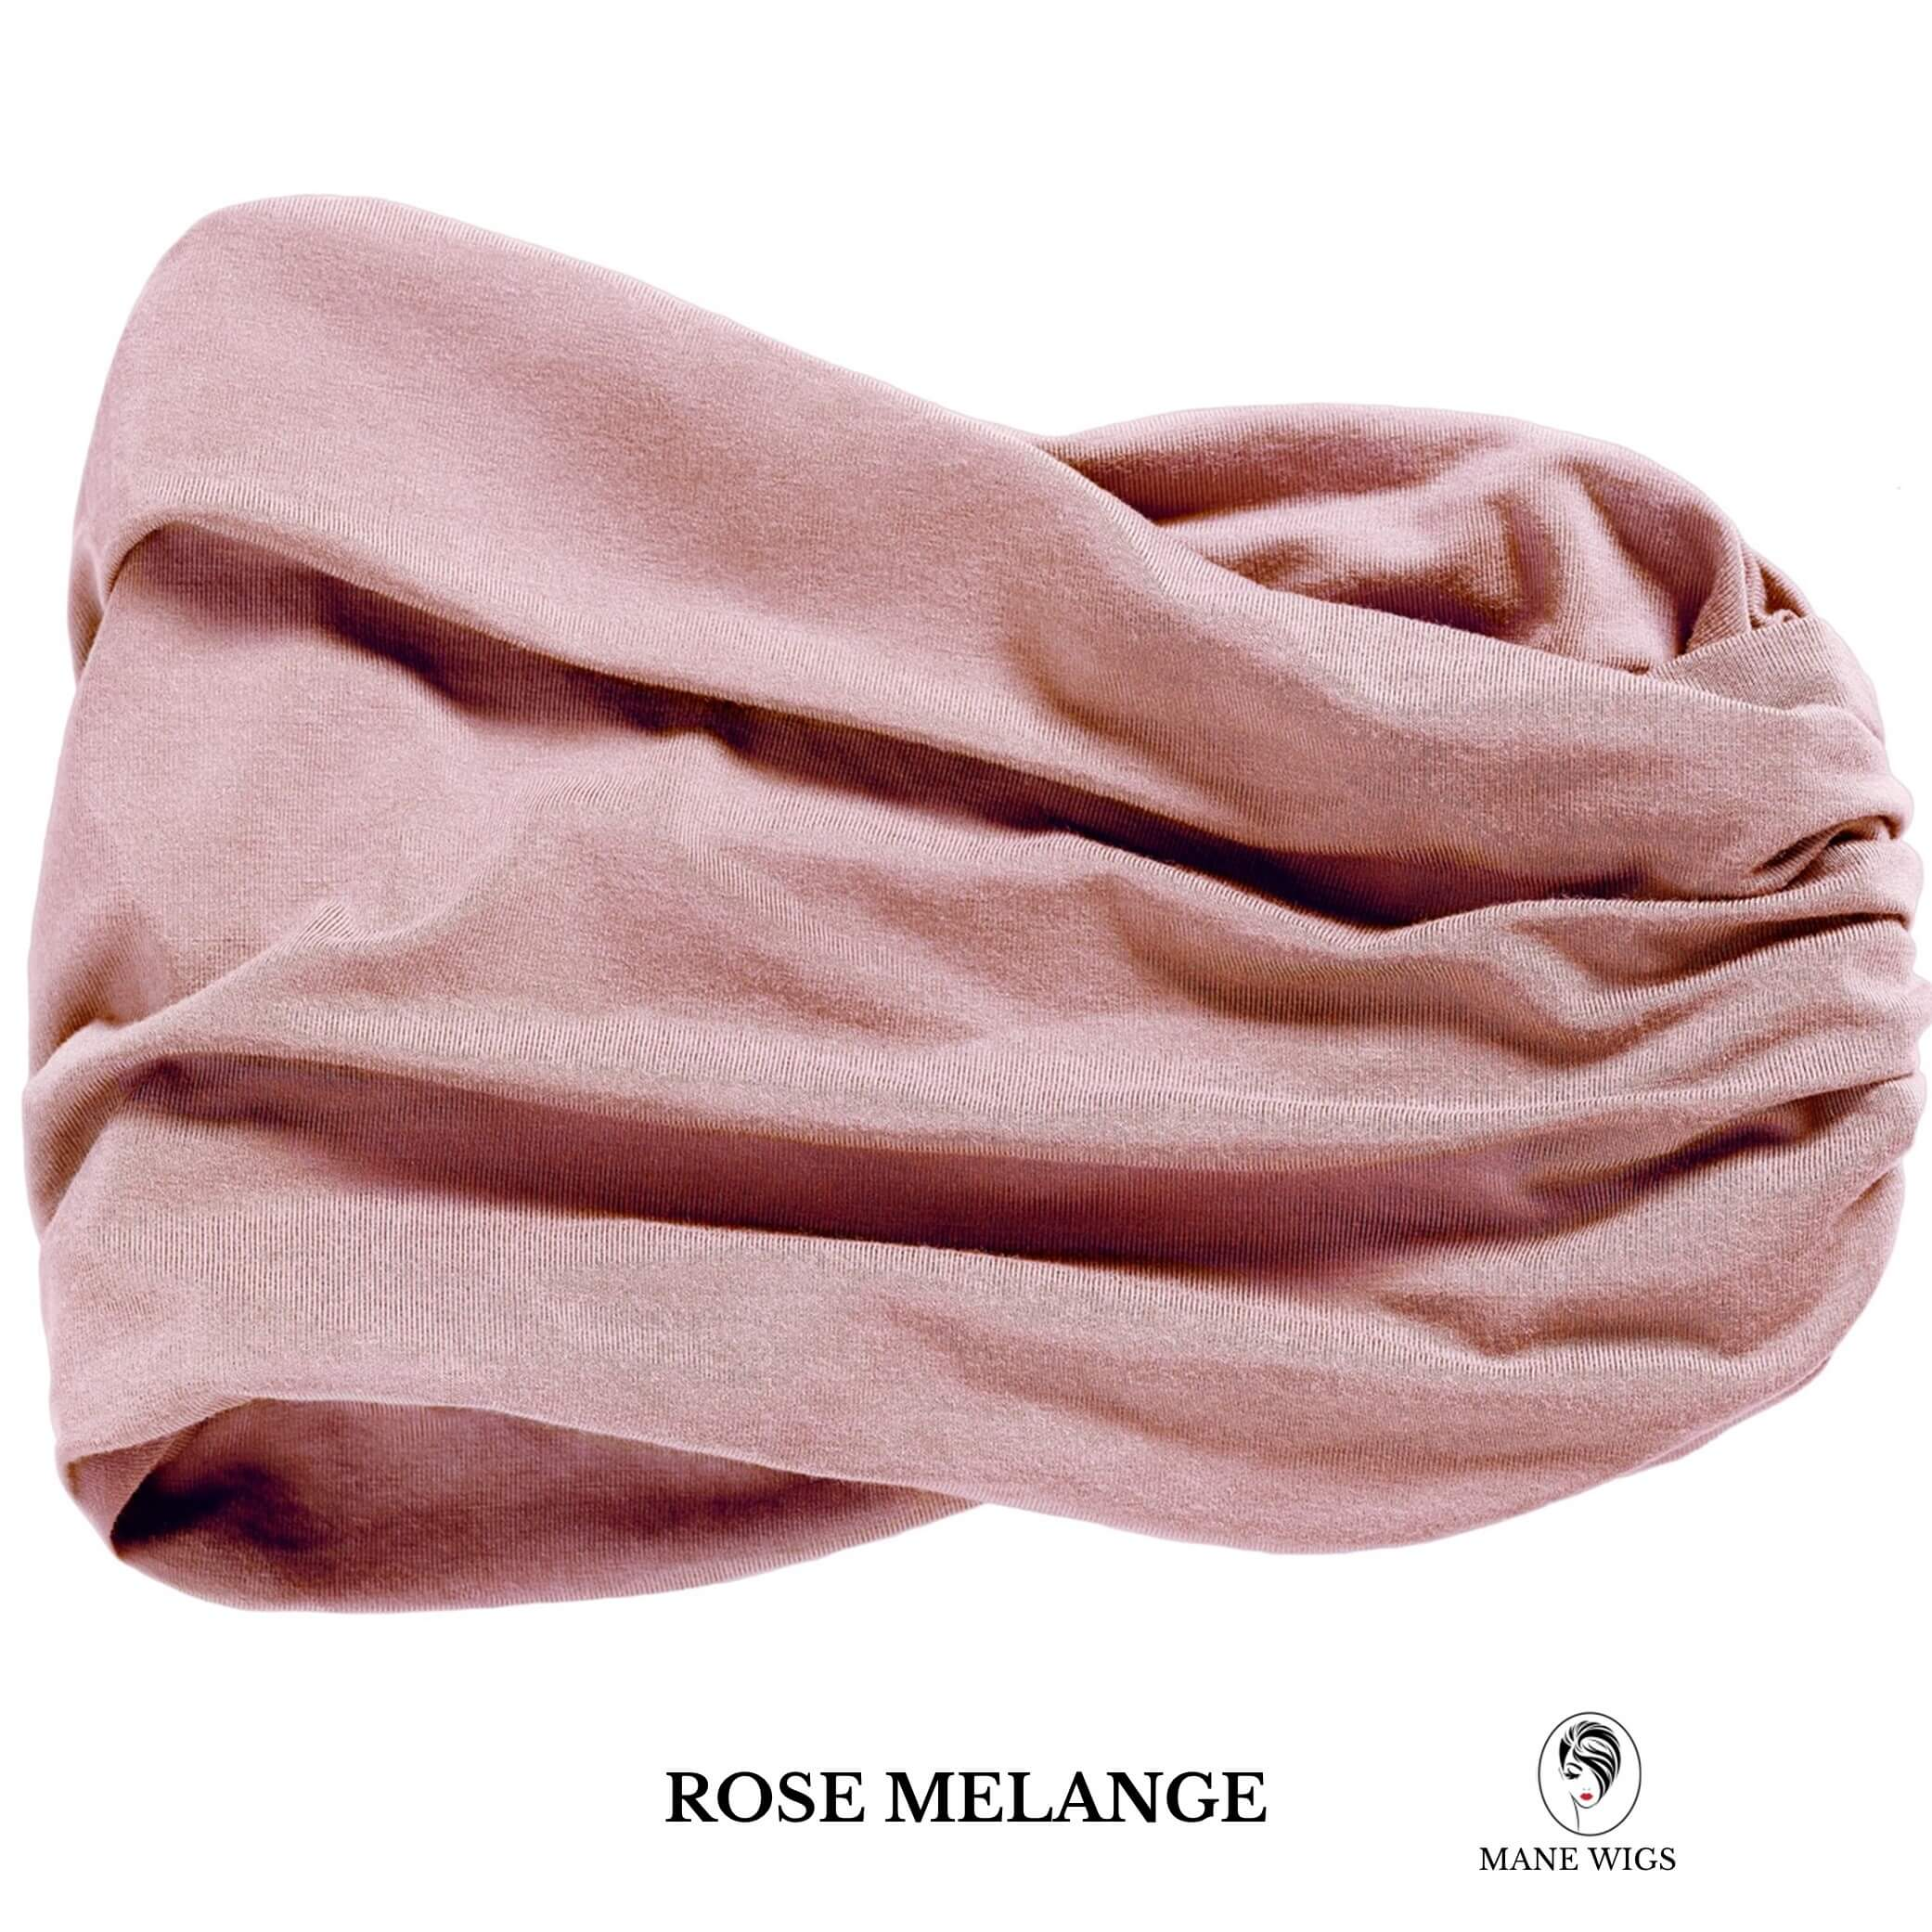 Christine Headwear Chitta Headband 320-Rose Melange